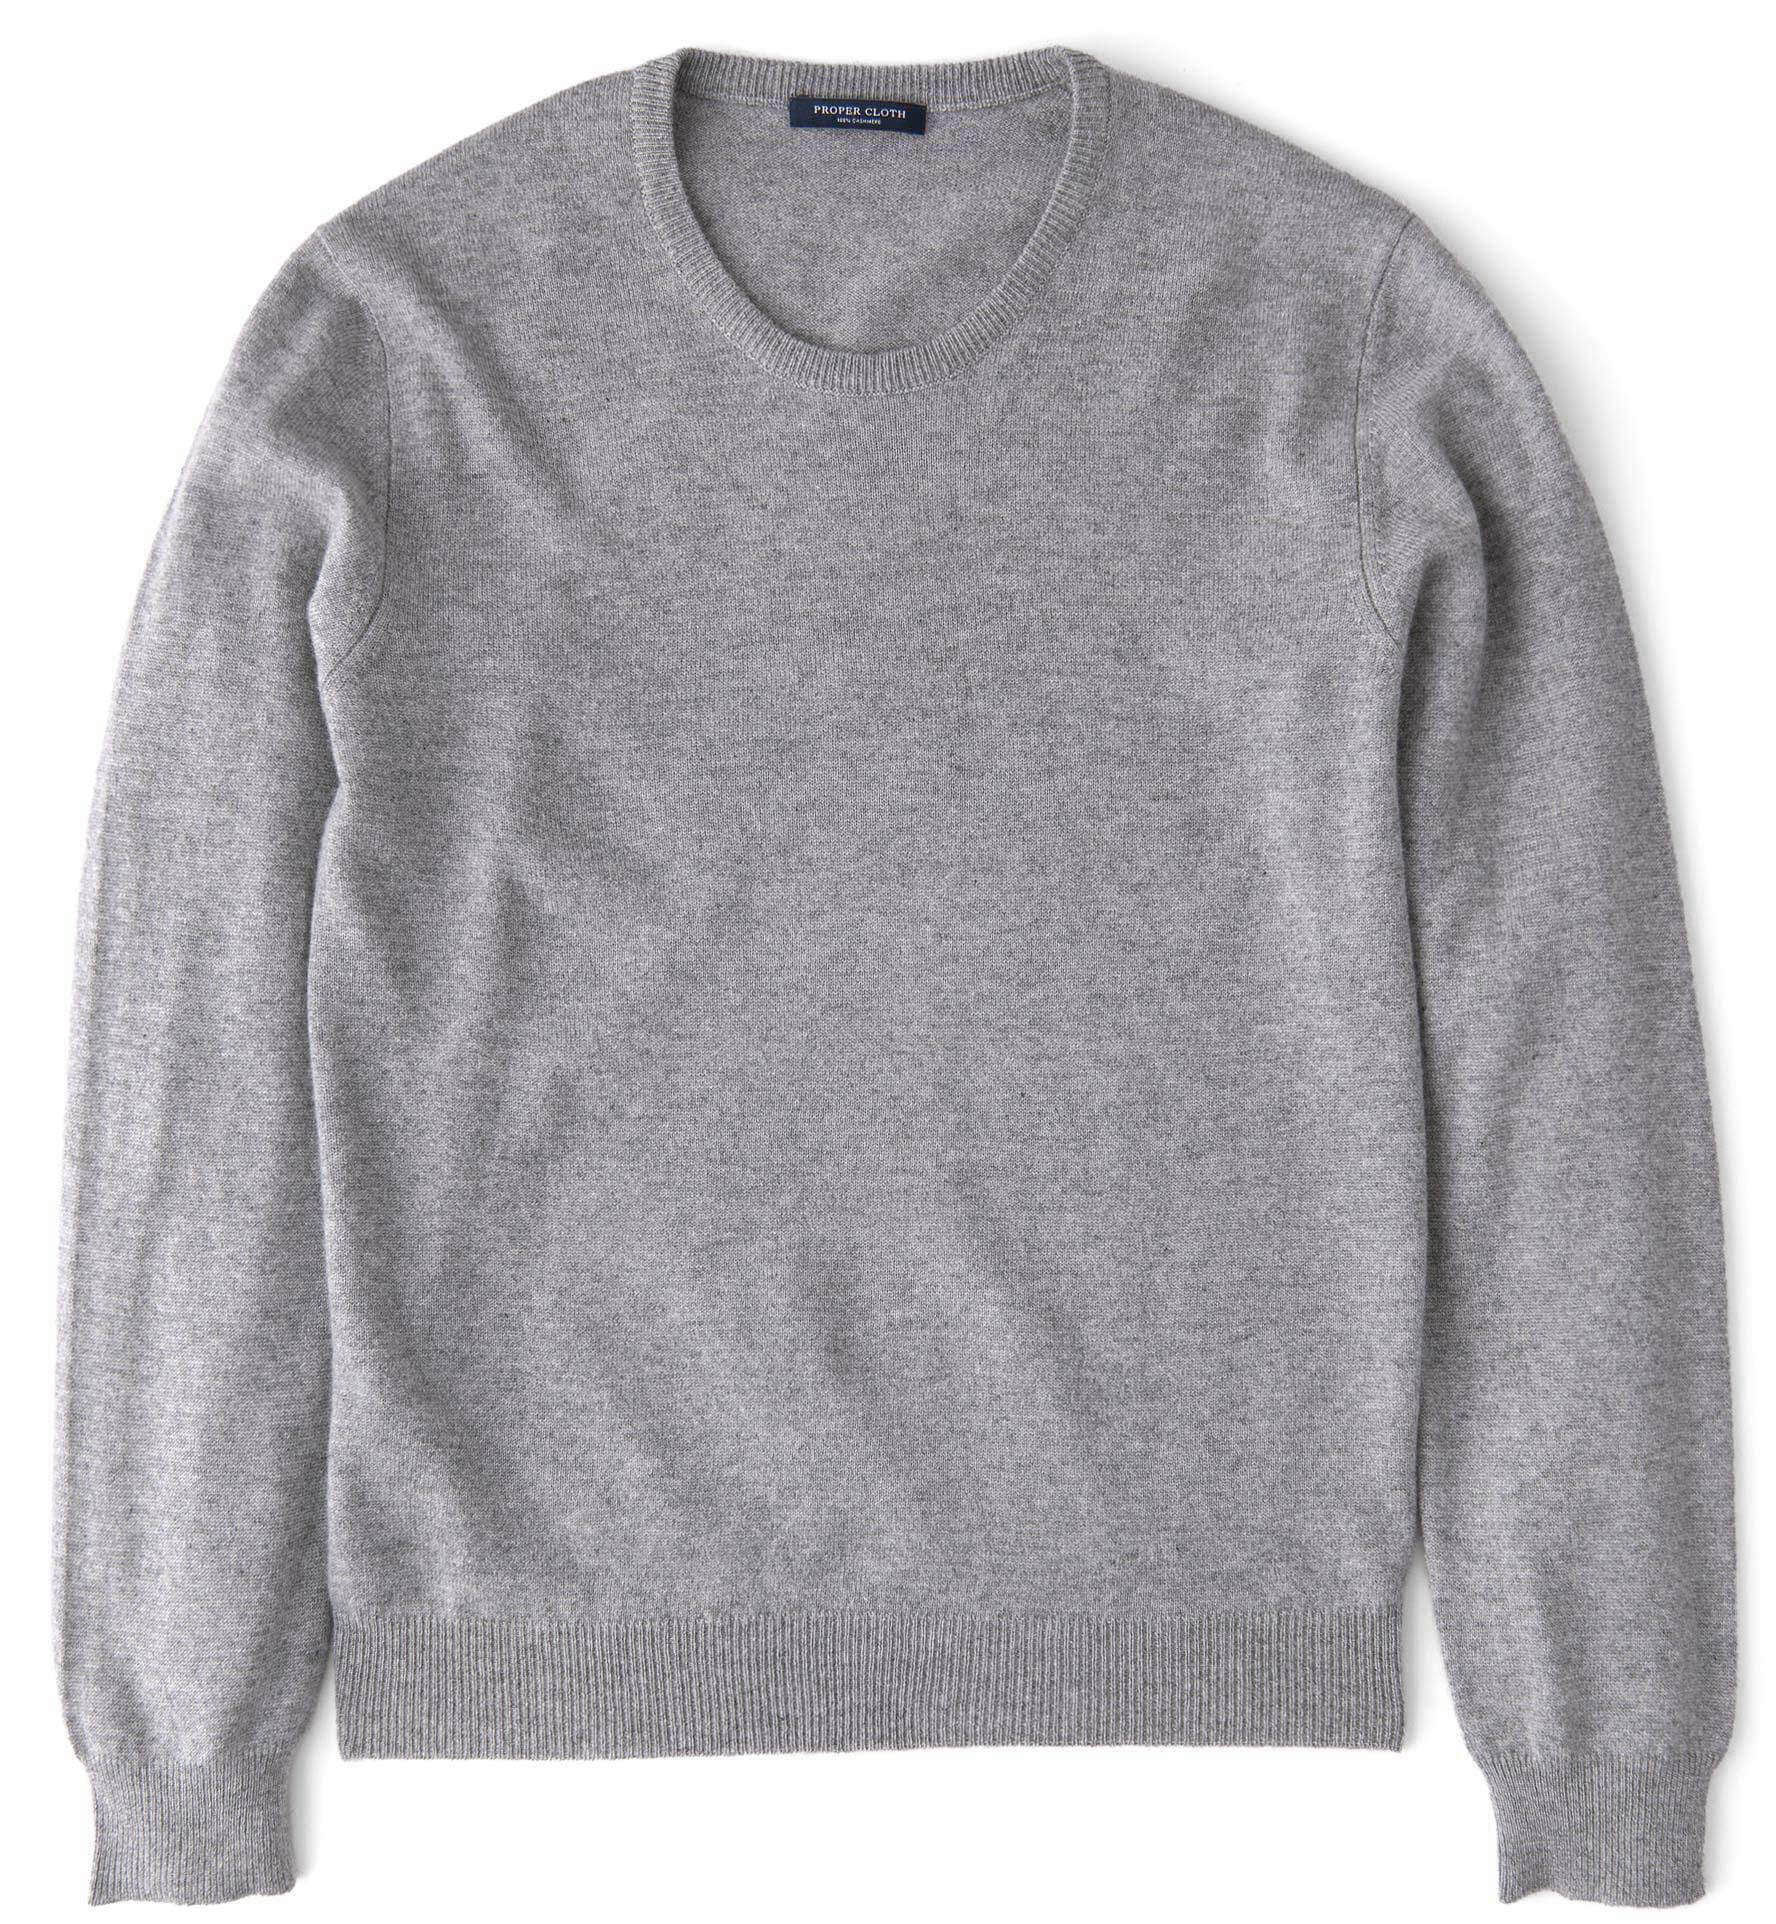 Zoom Image of Light Grey Cashmere Crewneck Sweater